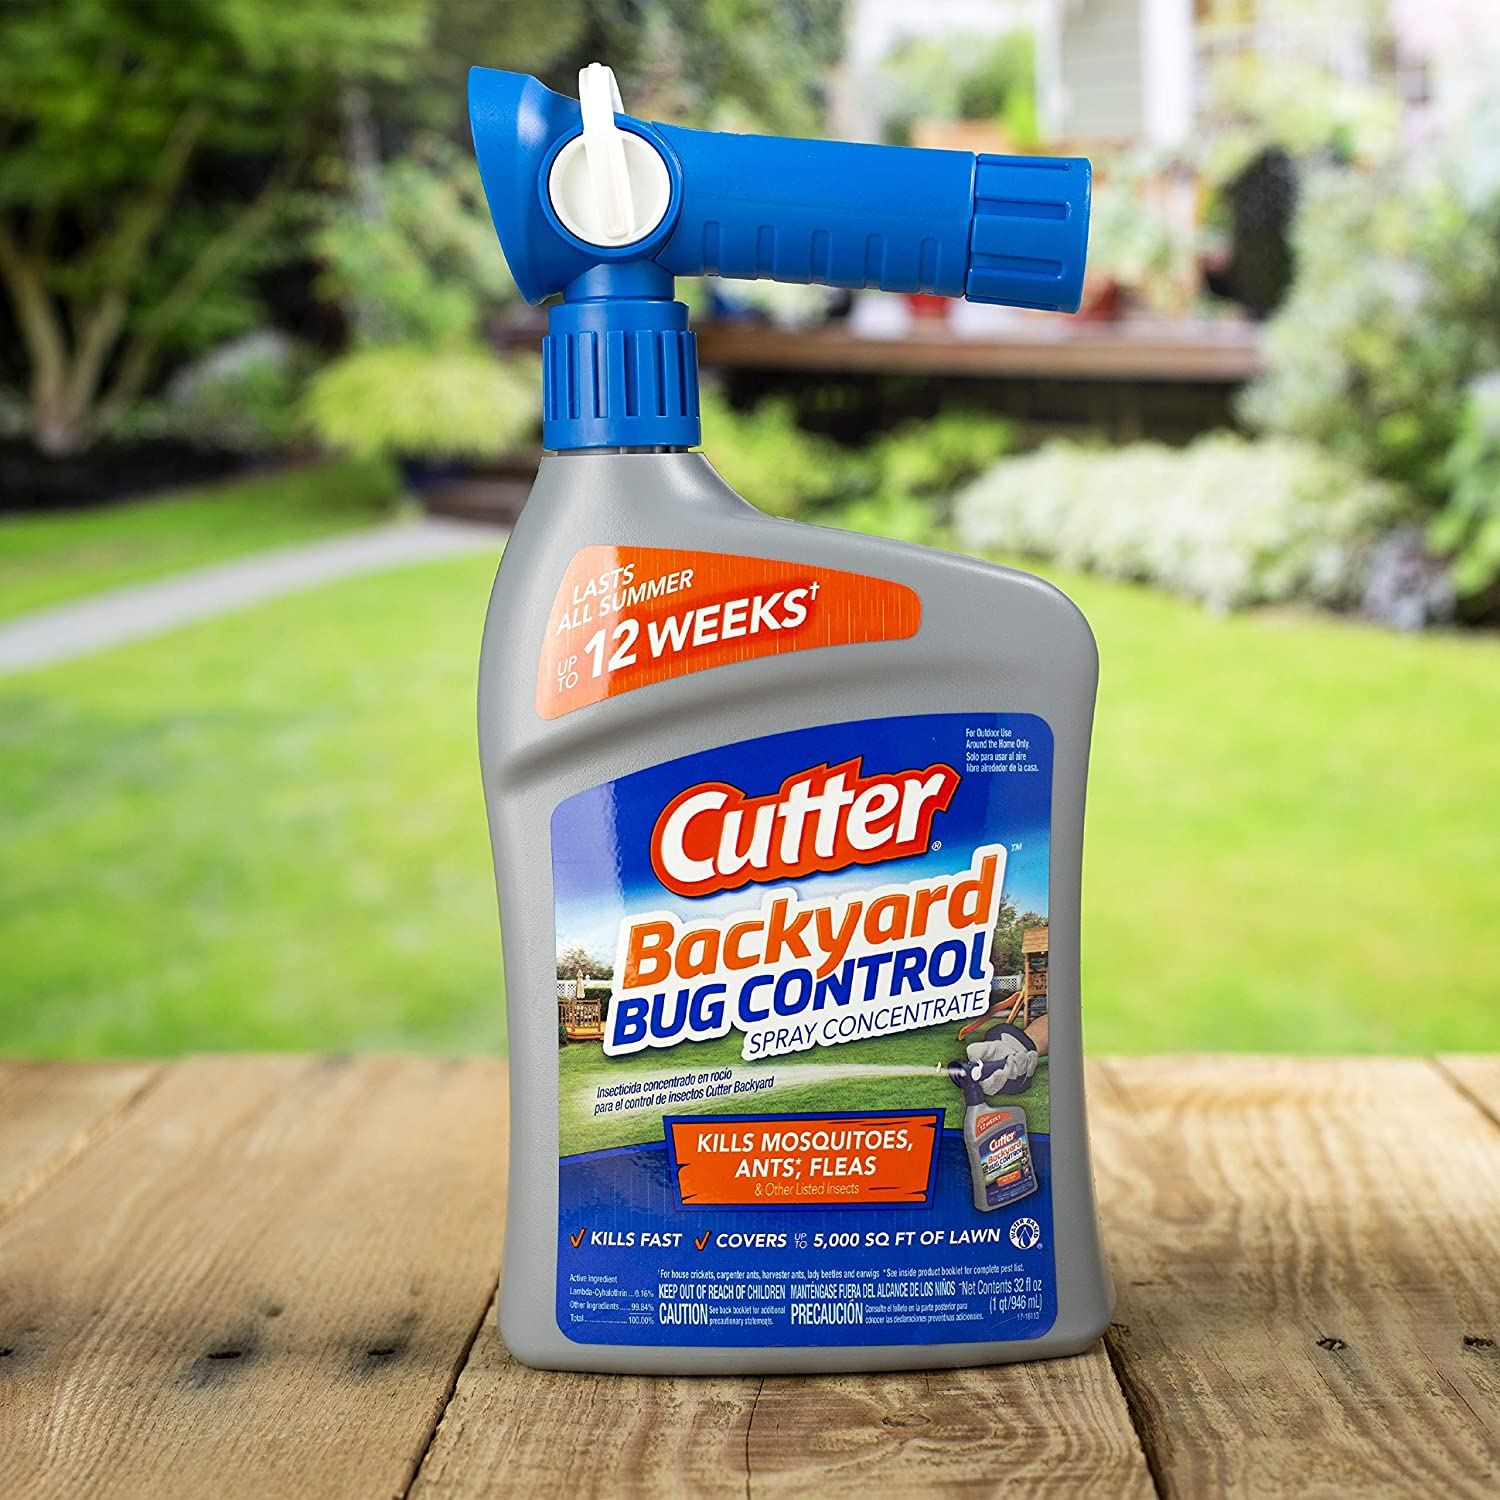 Amazon.com : Cutter Backyard Bug Control Spray Concentrate, 32-Ounce :  Insect Repelling Products : Garden & Outdoor - Amazon.com : Cutter Backyard Bug Control Spray Concentrate, 32-Ounce